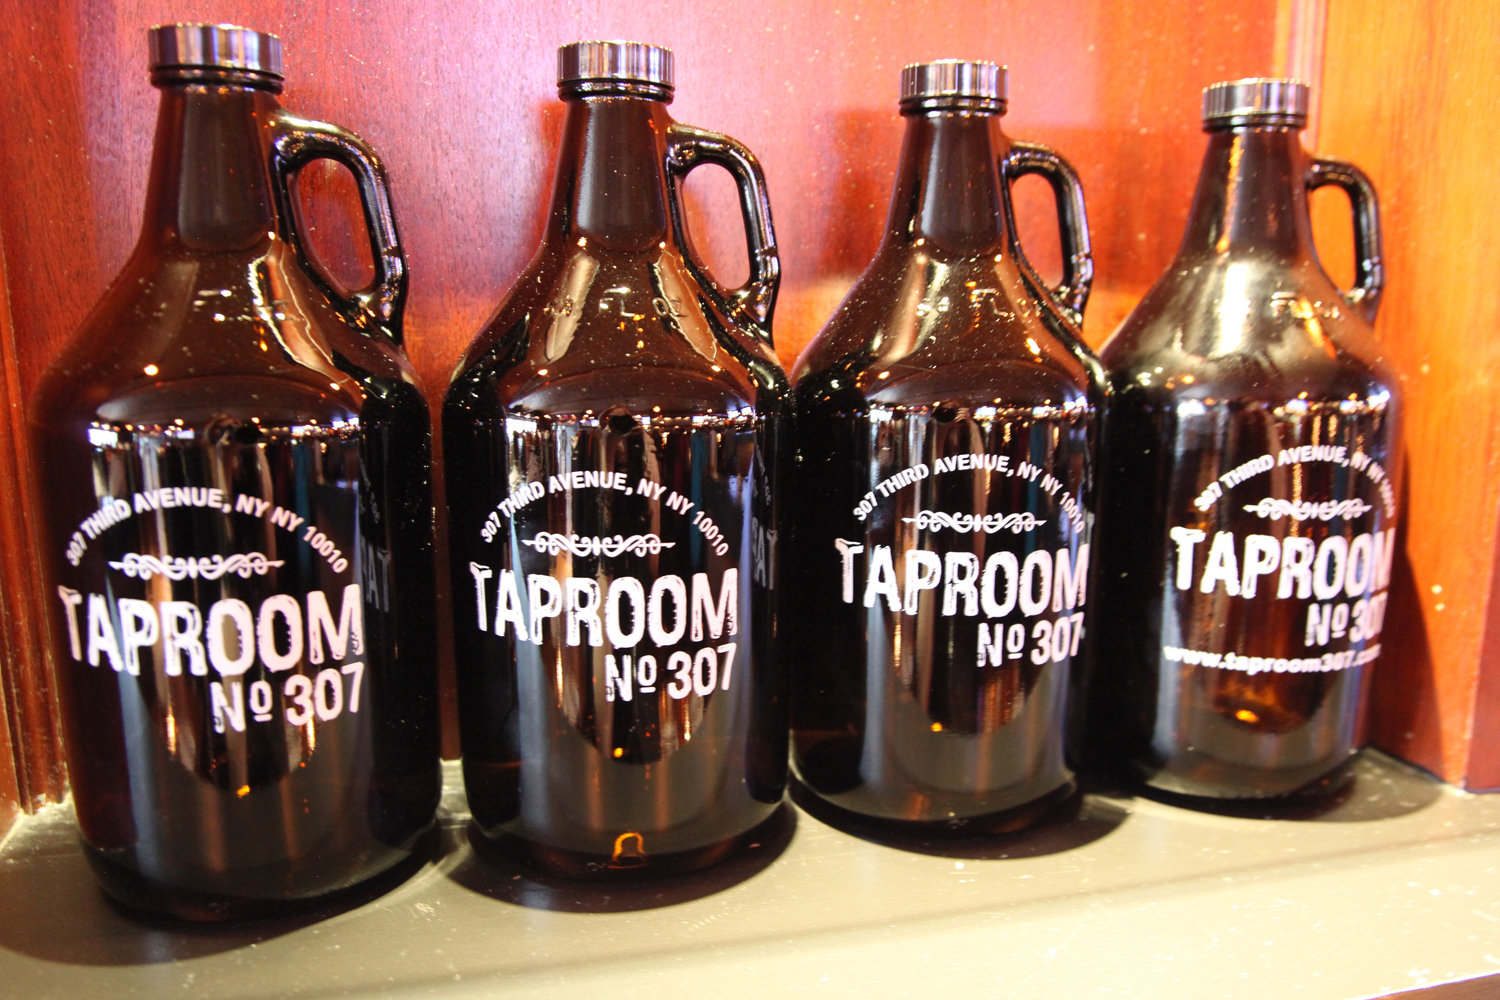 Taproom No 307 Growler